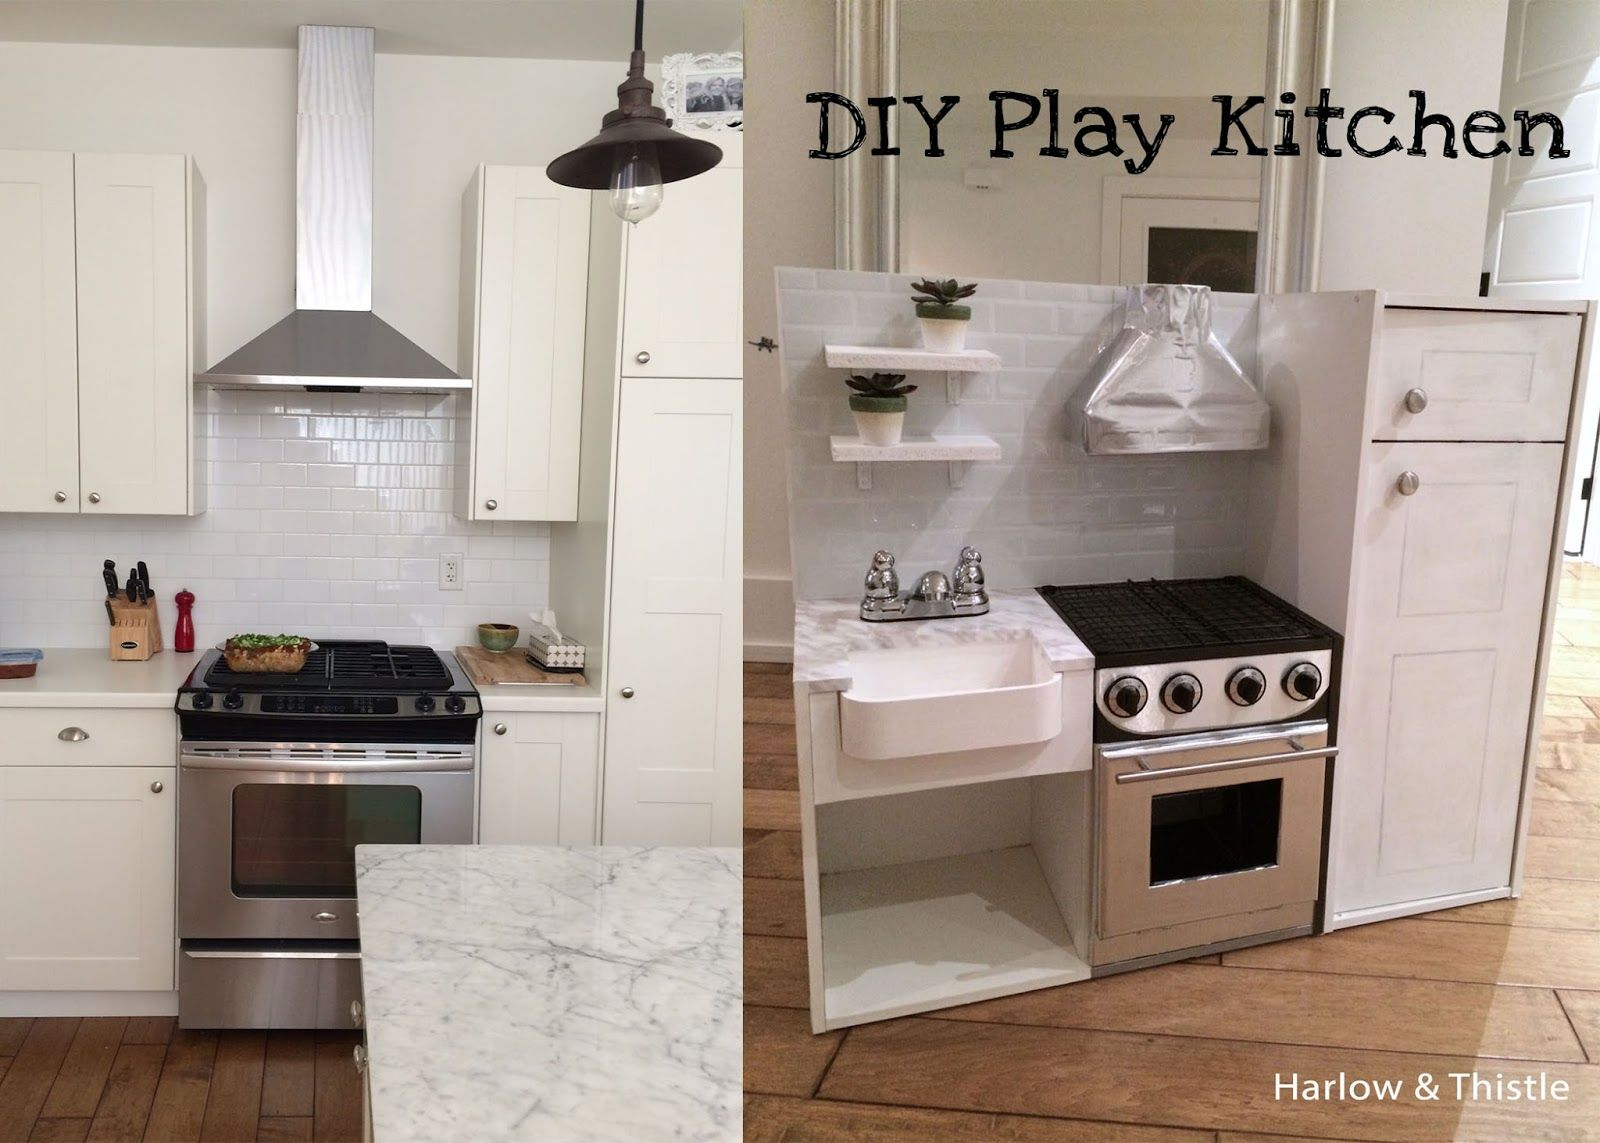 Diy Play Kitchen harlow & thistle - diy play kitchen, toy kitchen with farmhouse